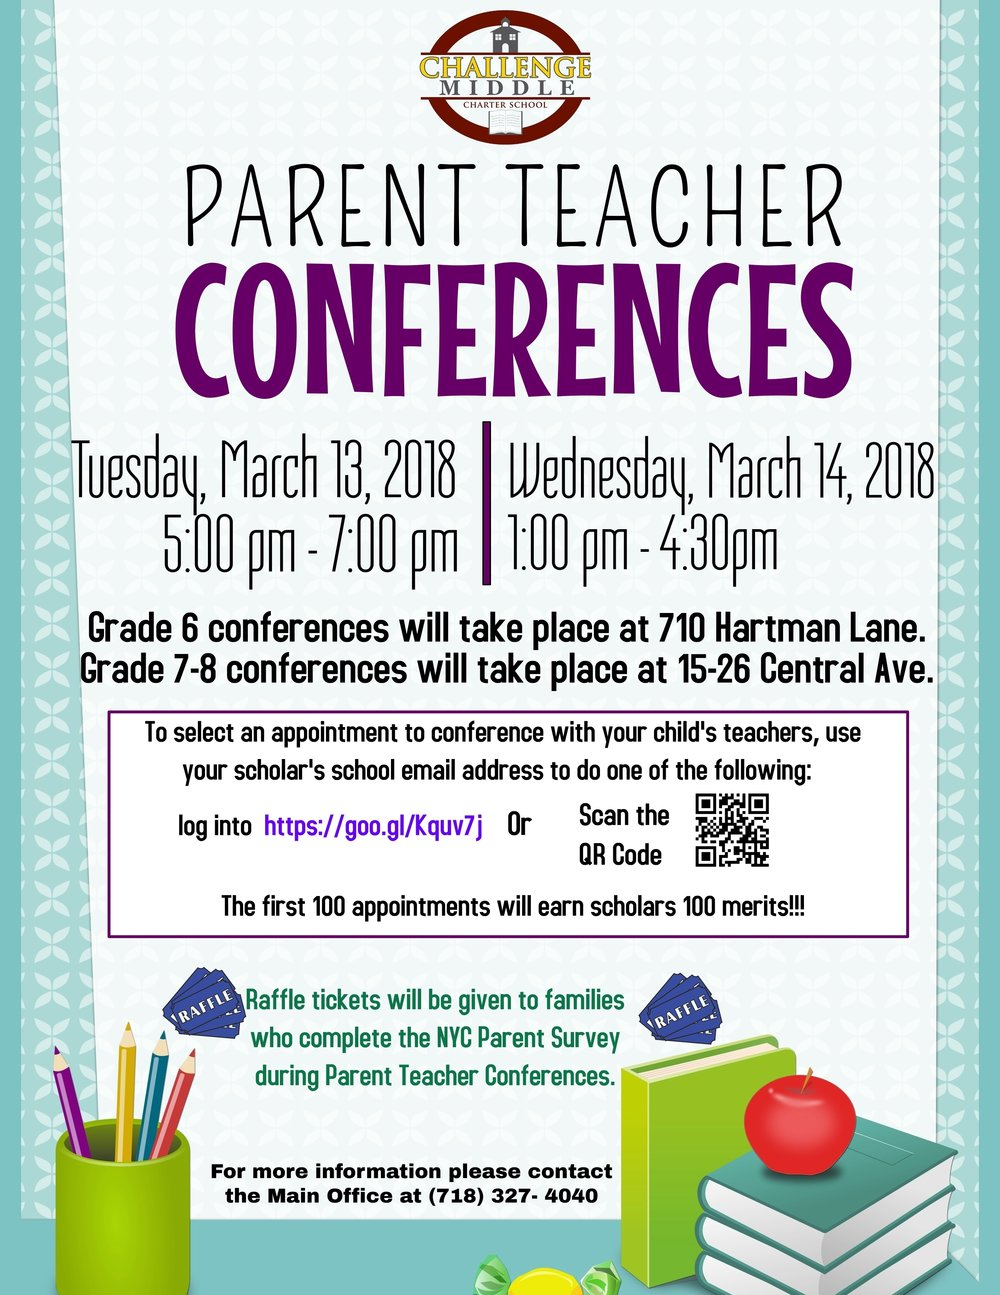 Parent Teacher Conferences 2018 Flyer.jpg